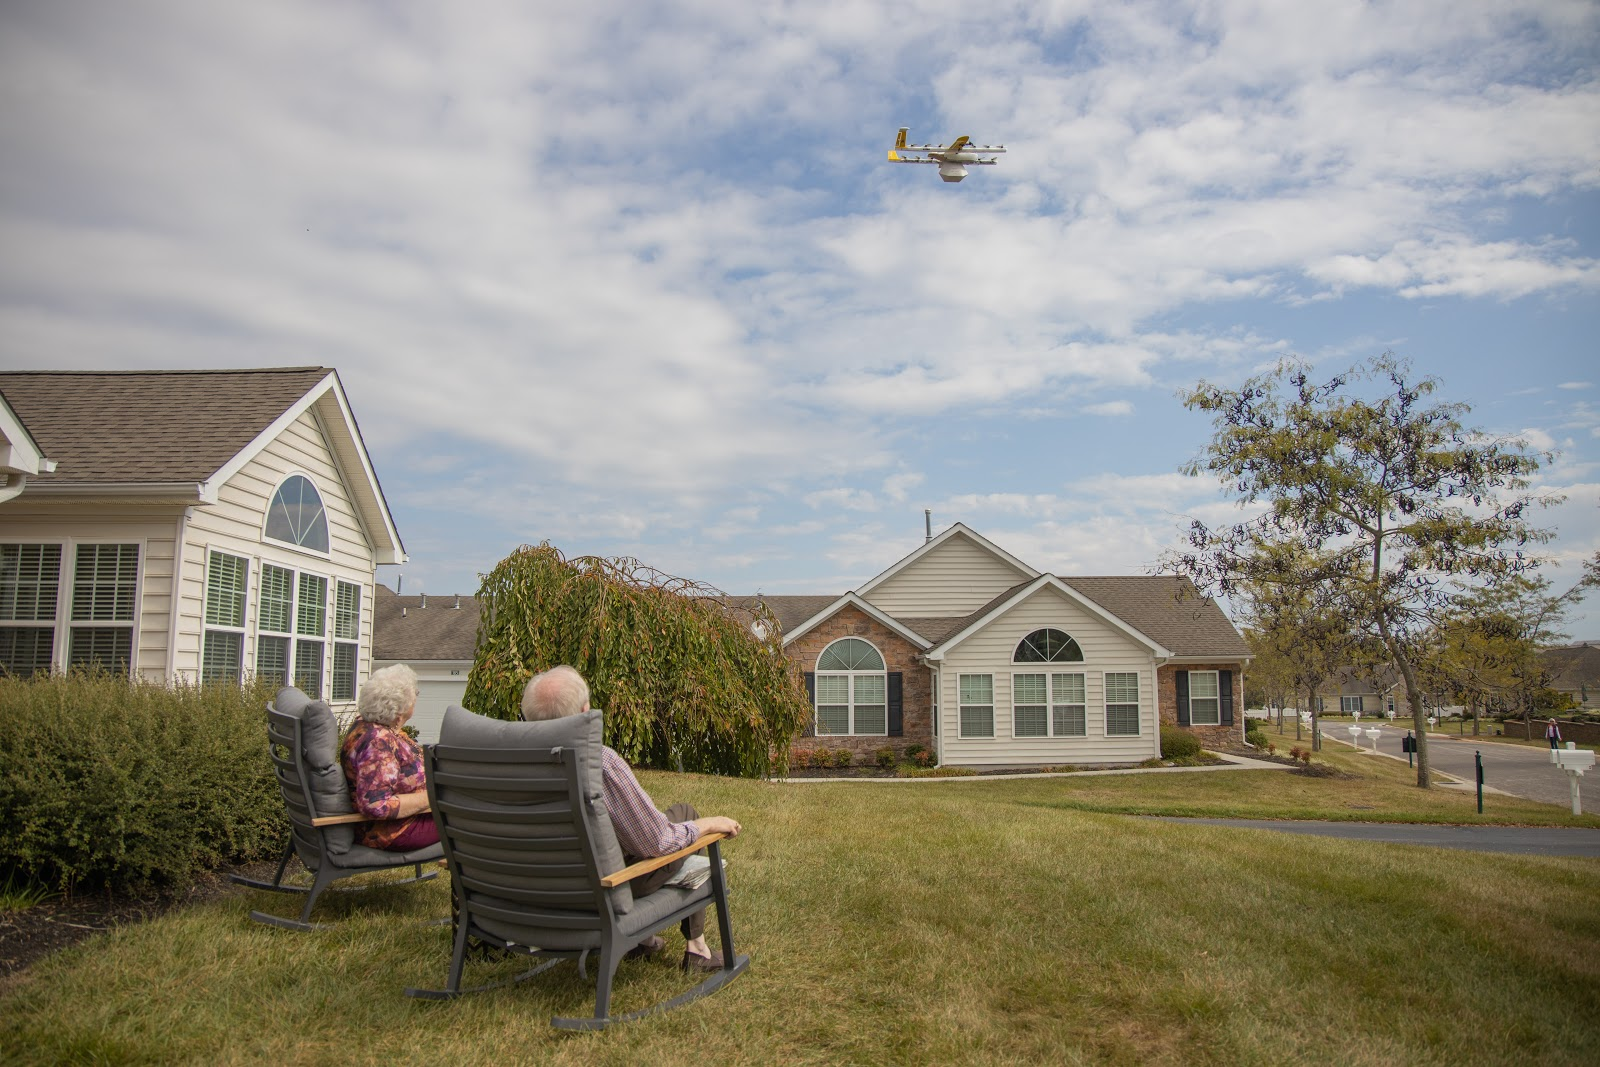 Customers receiving Wing package via drone delivery